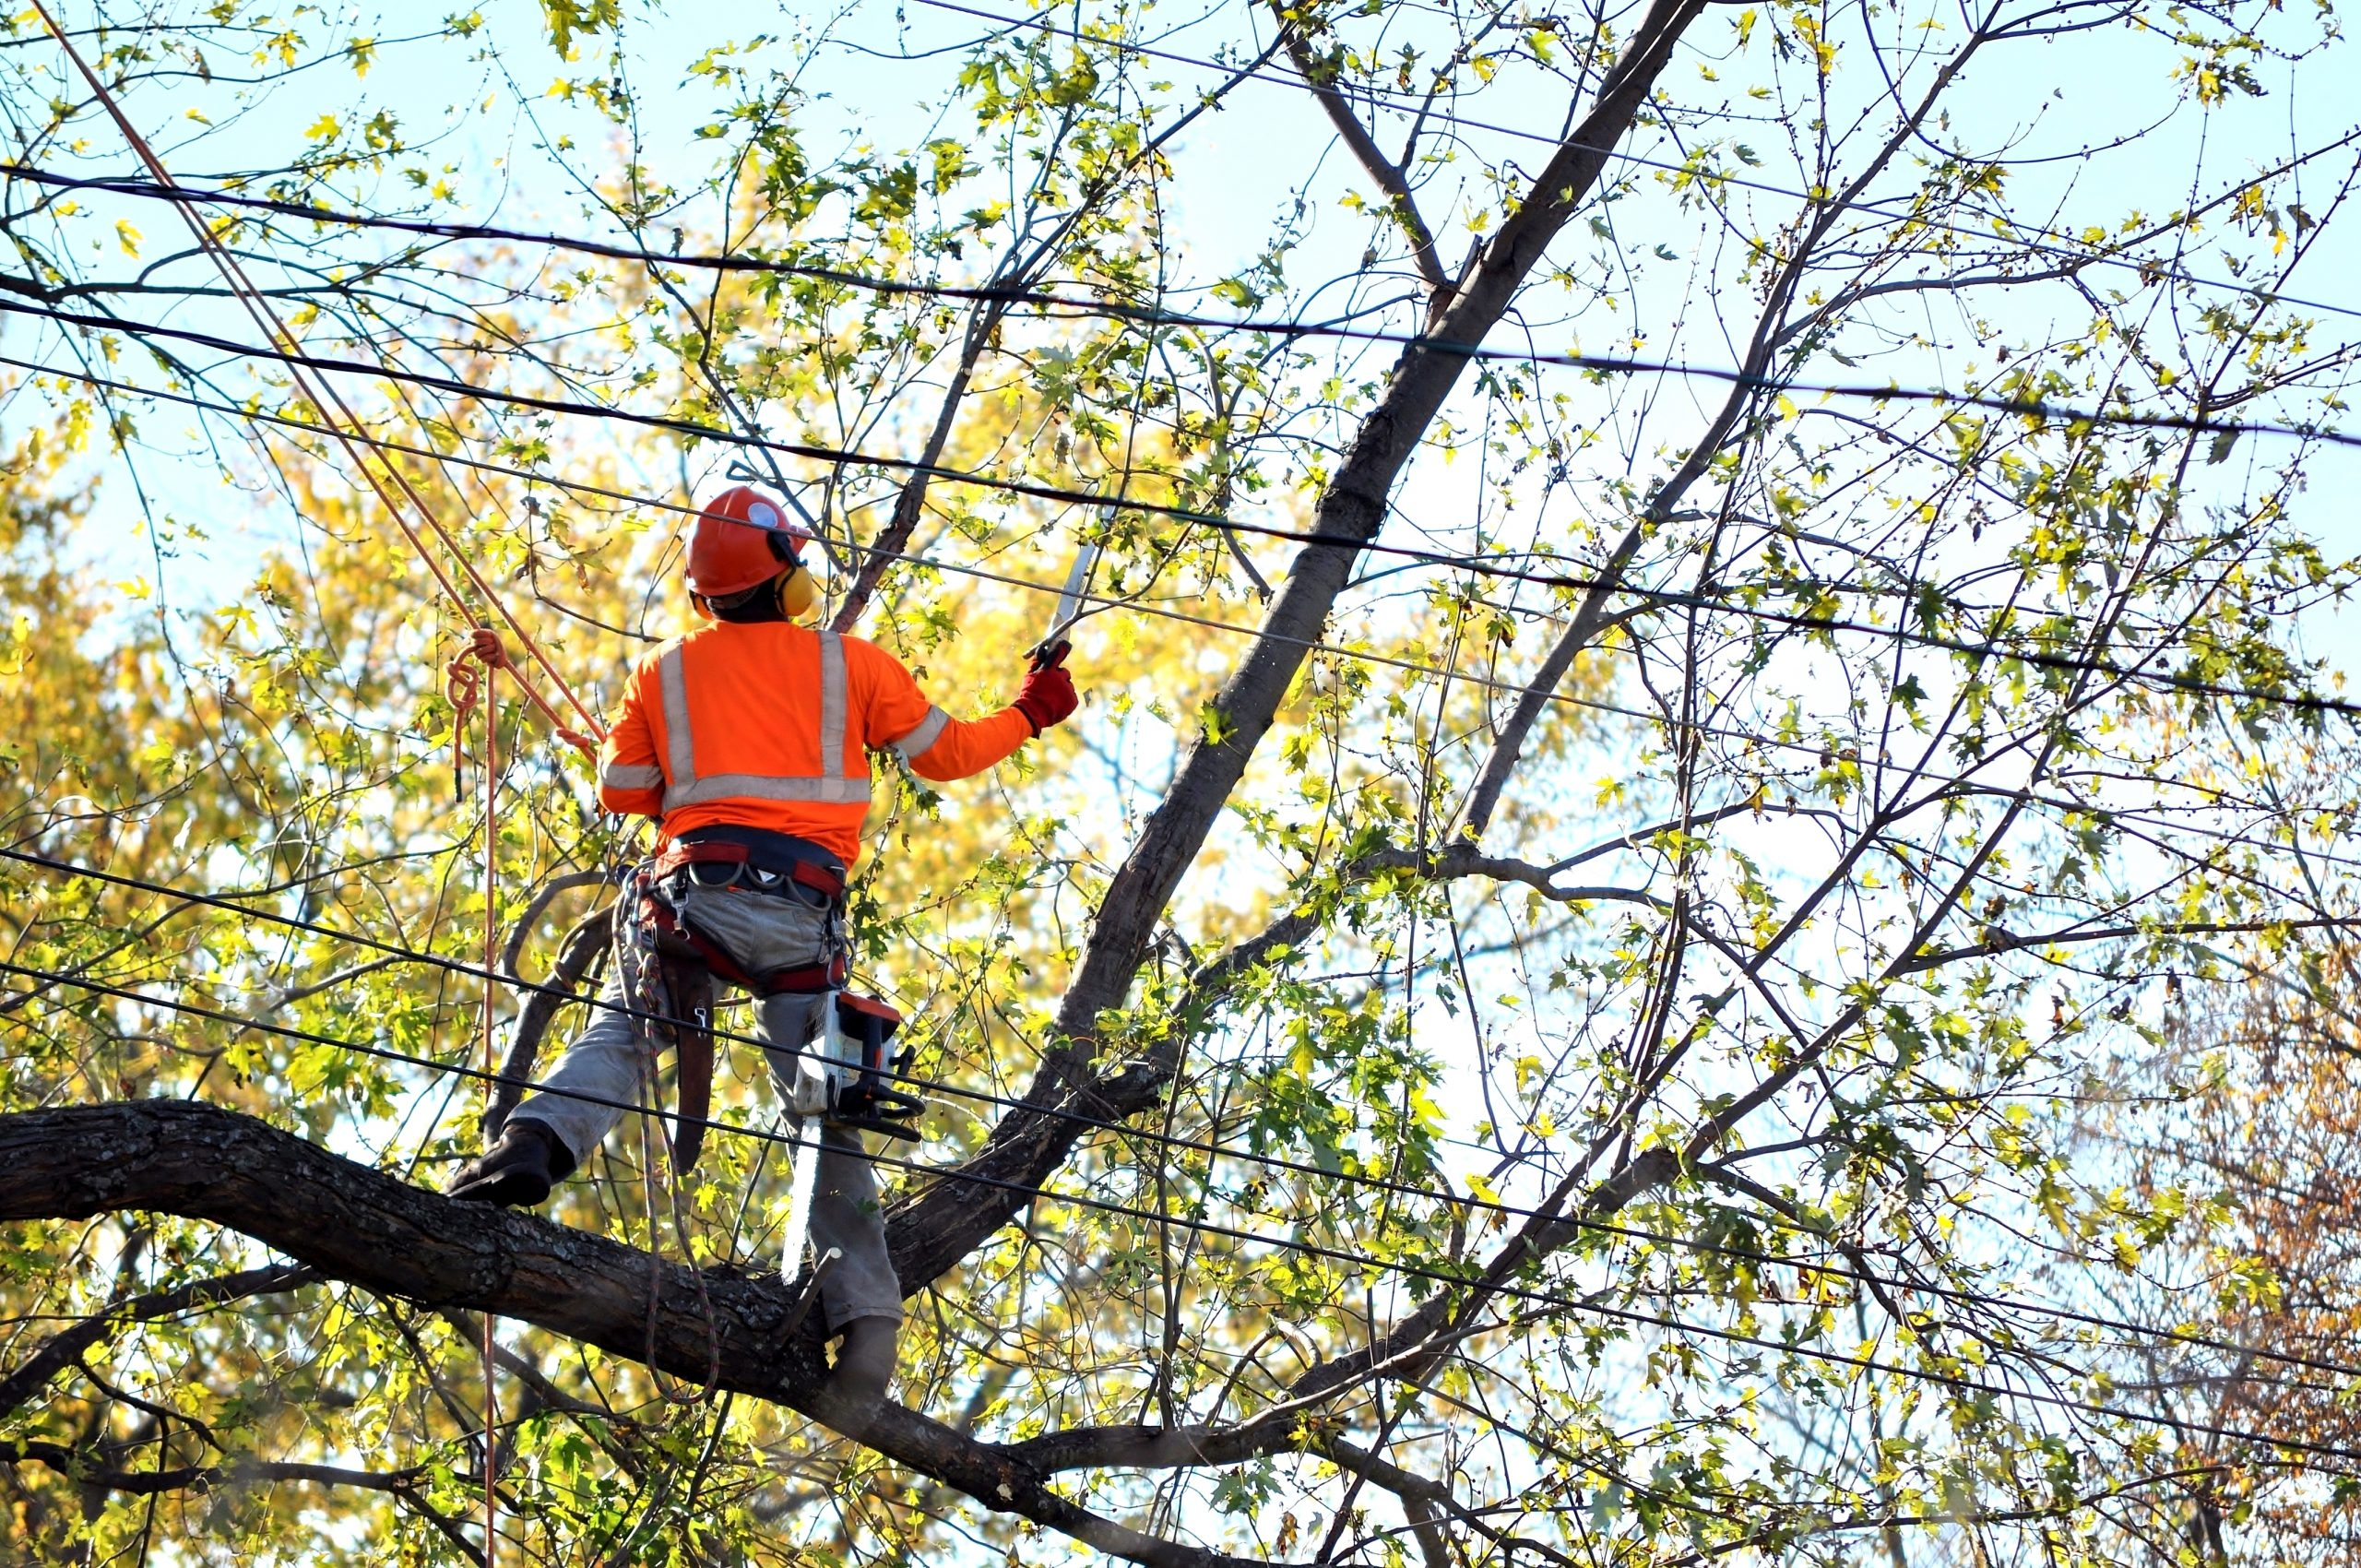 Man removing tree branches from around power lines